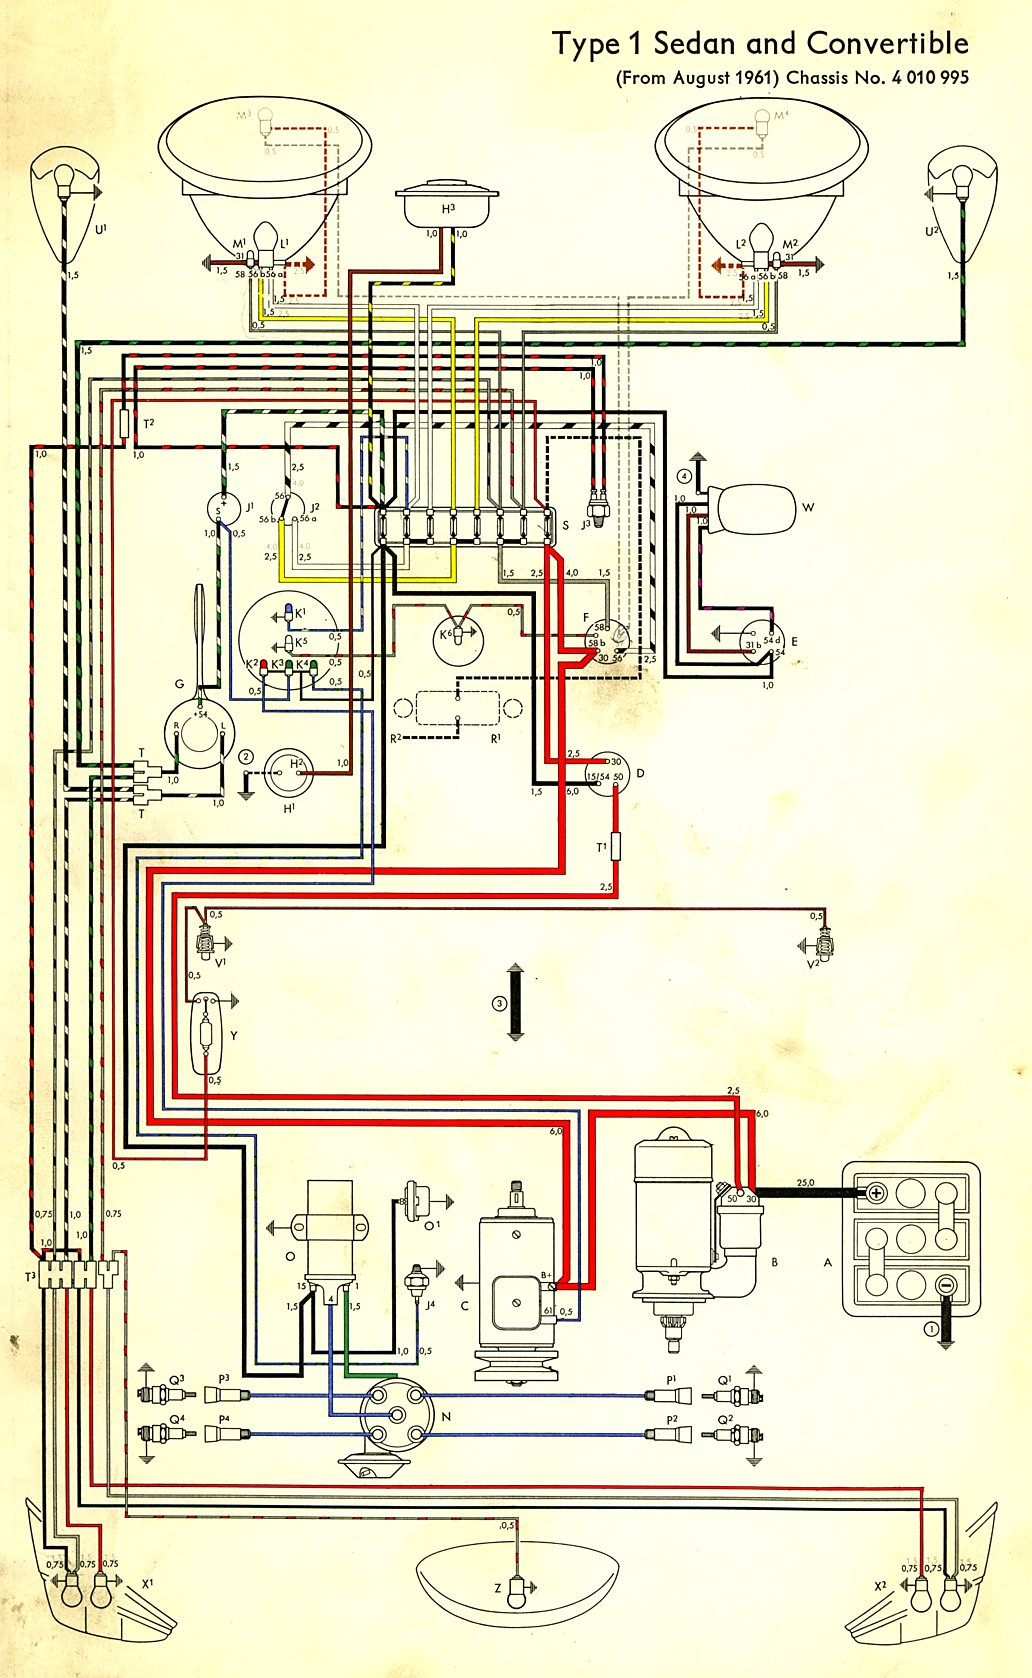 1969 vw beetle wiring diagram diagrams thesamba thesamba.com :: beetle - 1958-1967 - view topic - blinkers ...